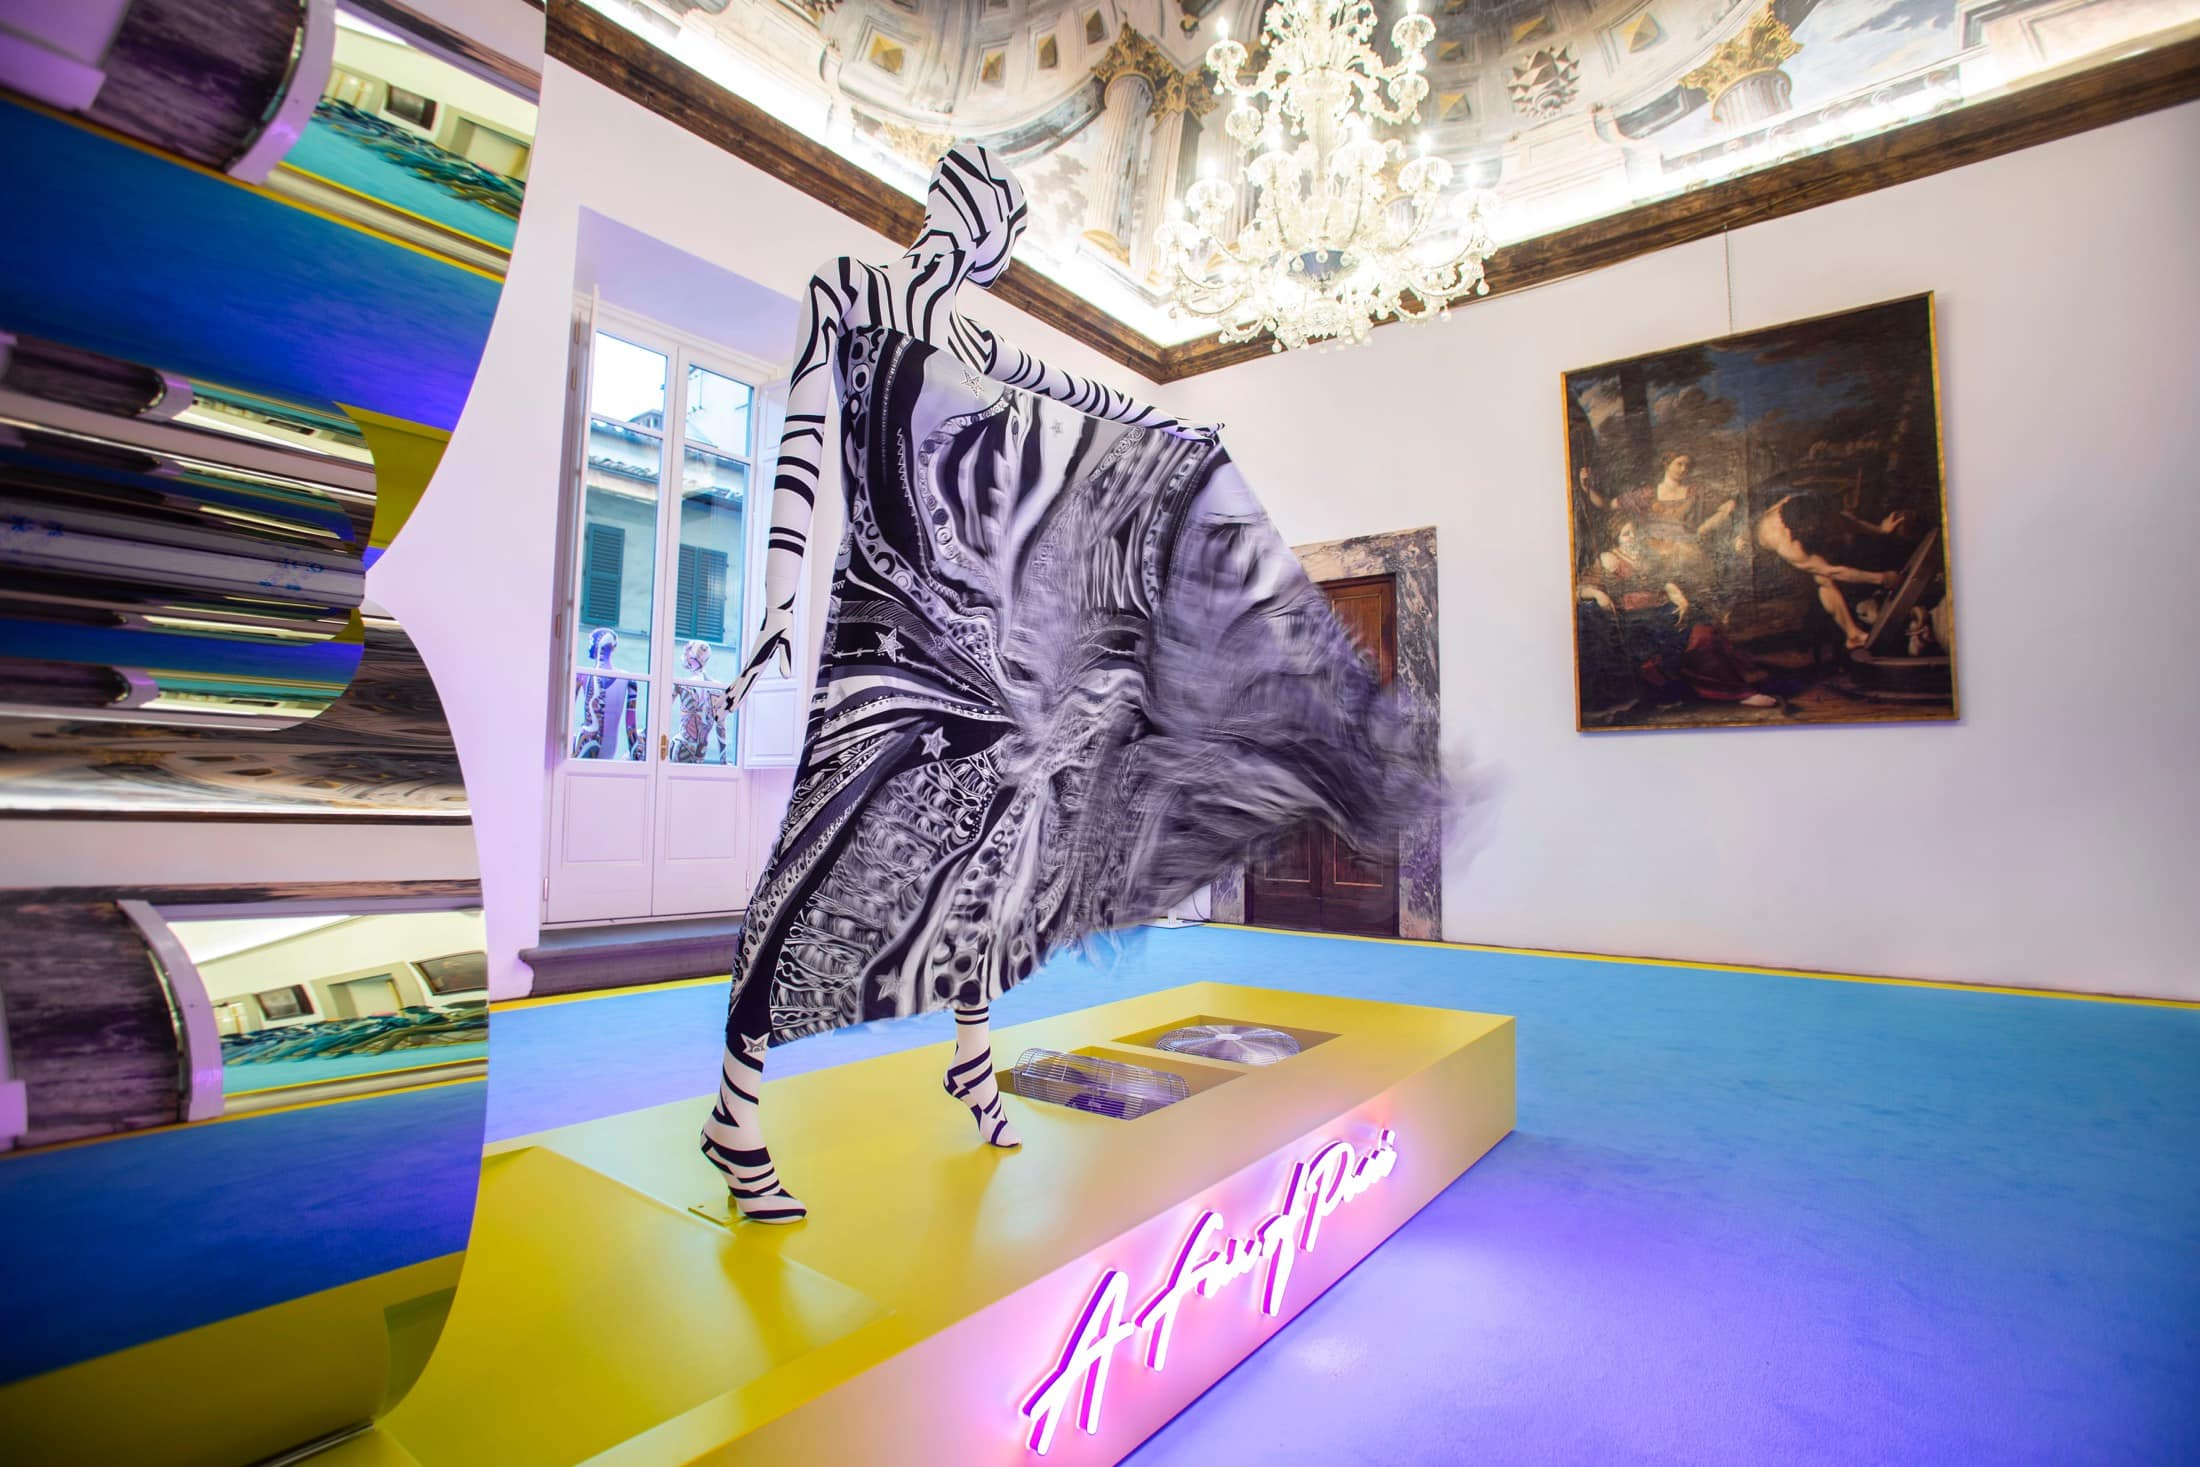 'Bonaveri - A fan of Pucci' - An exhibition of heritage and craft